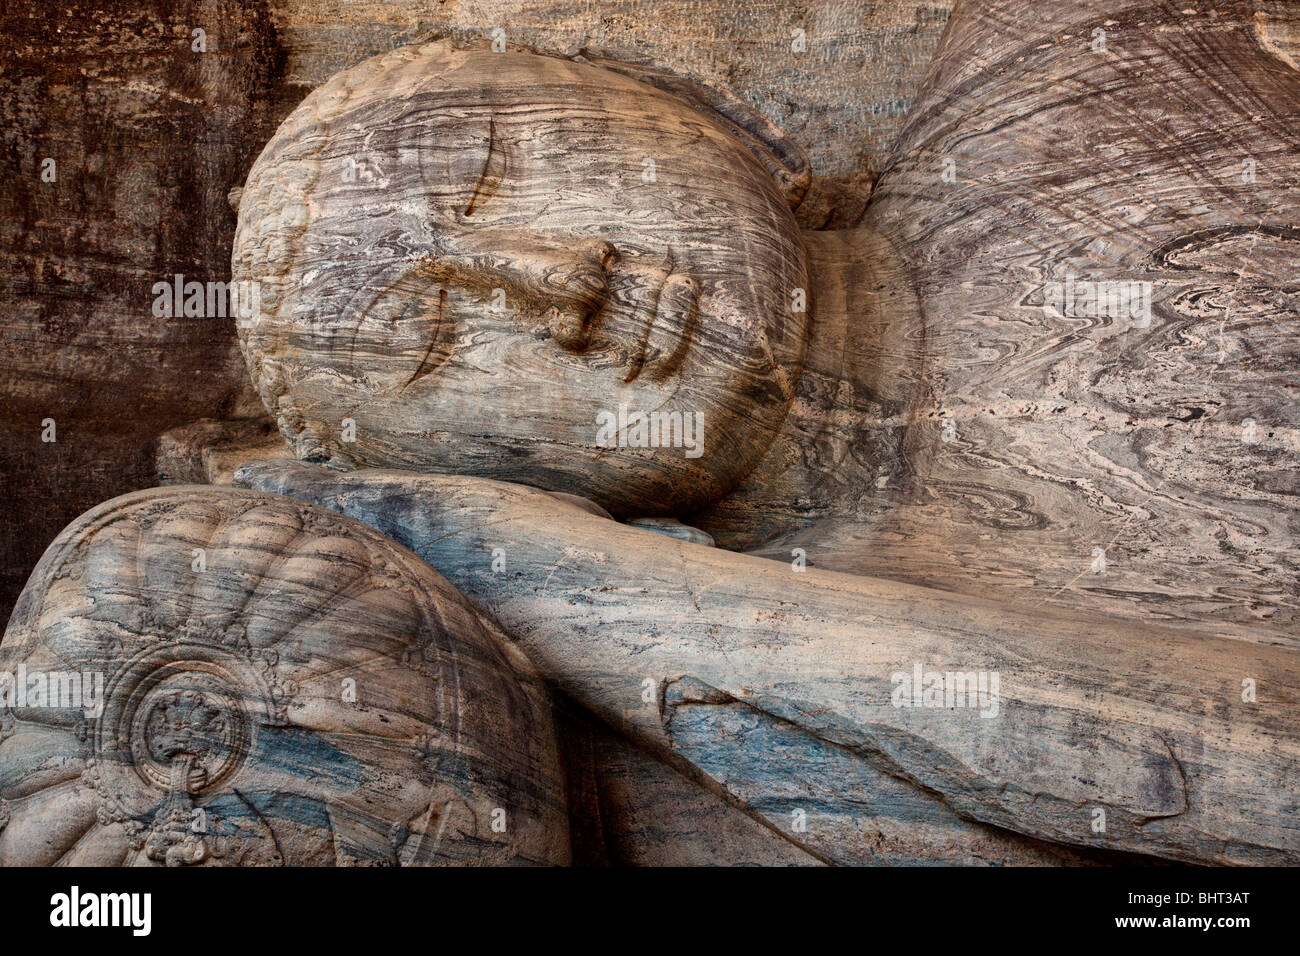 Close-up of Reclining Buddha, Gal Vihara, Polonnaruwa, Sri Lanka Stock Photo